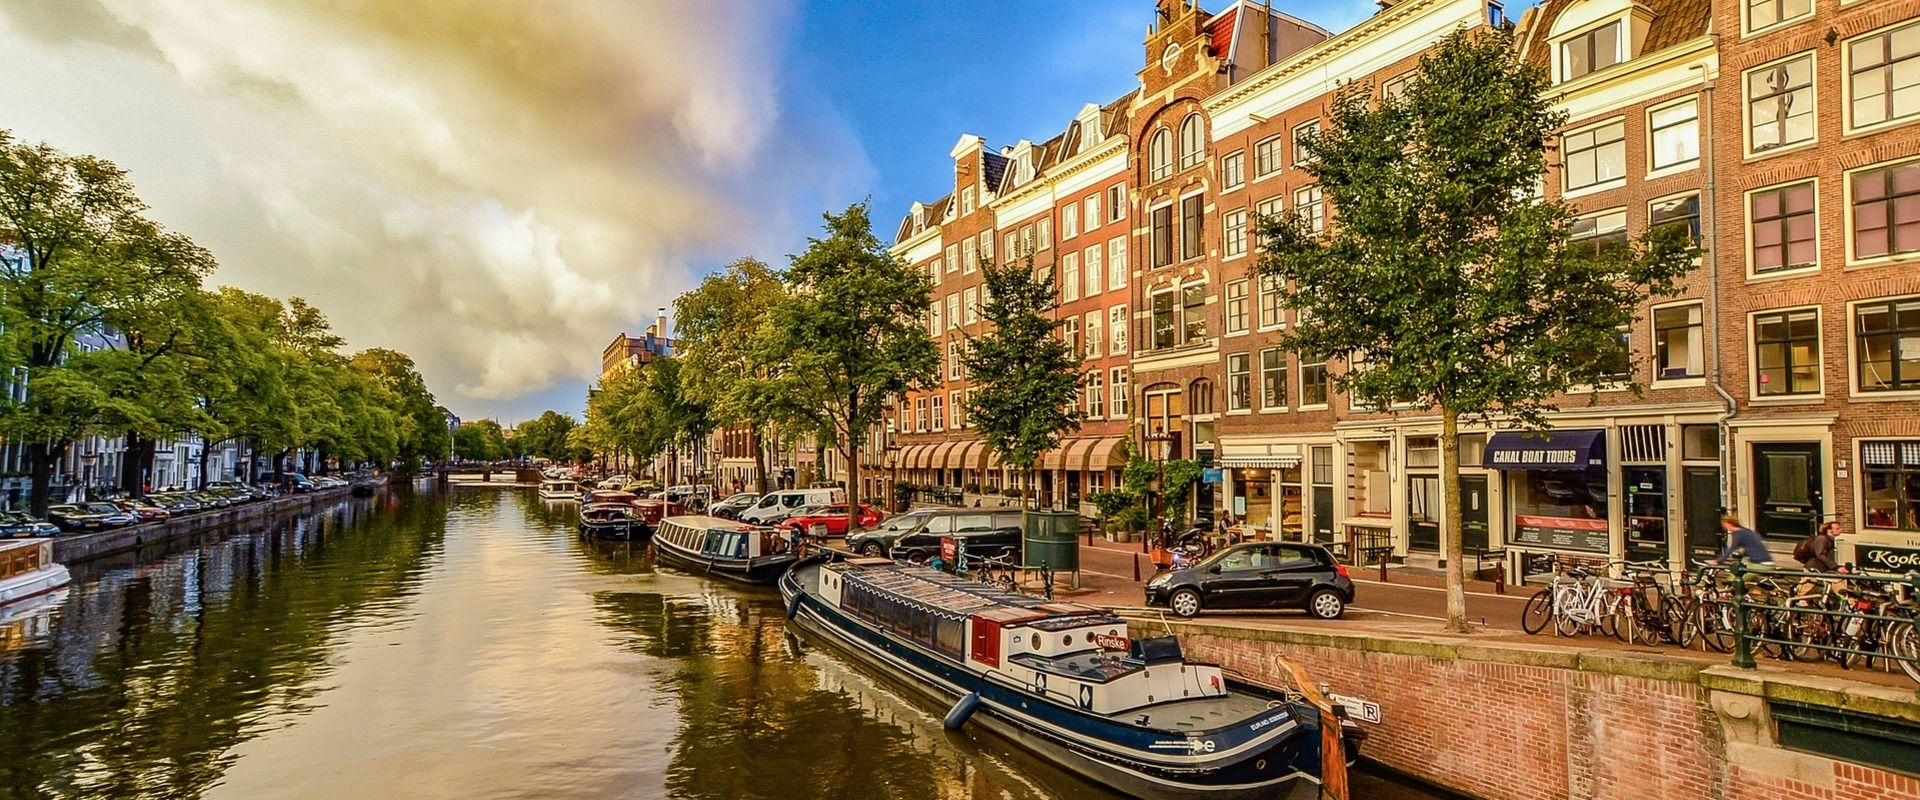 PhD Scholarships In The Netherlands